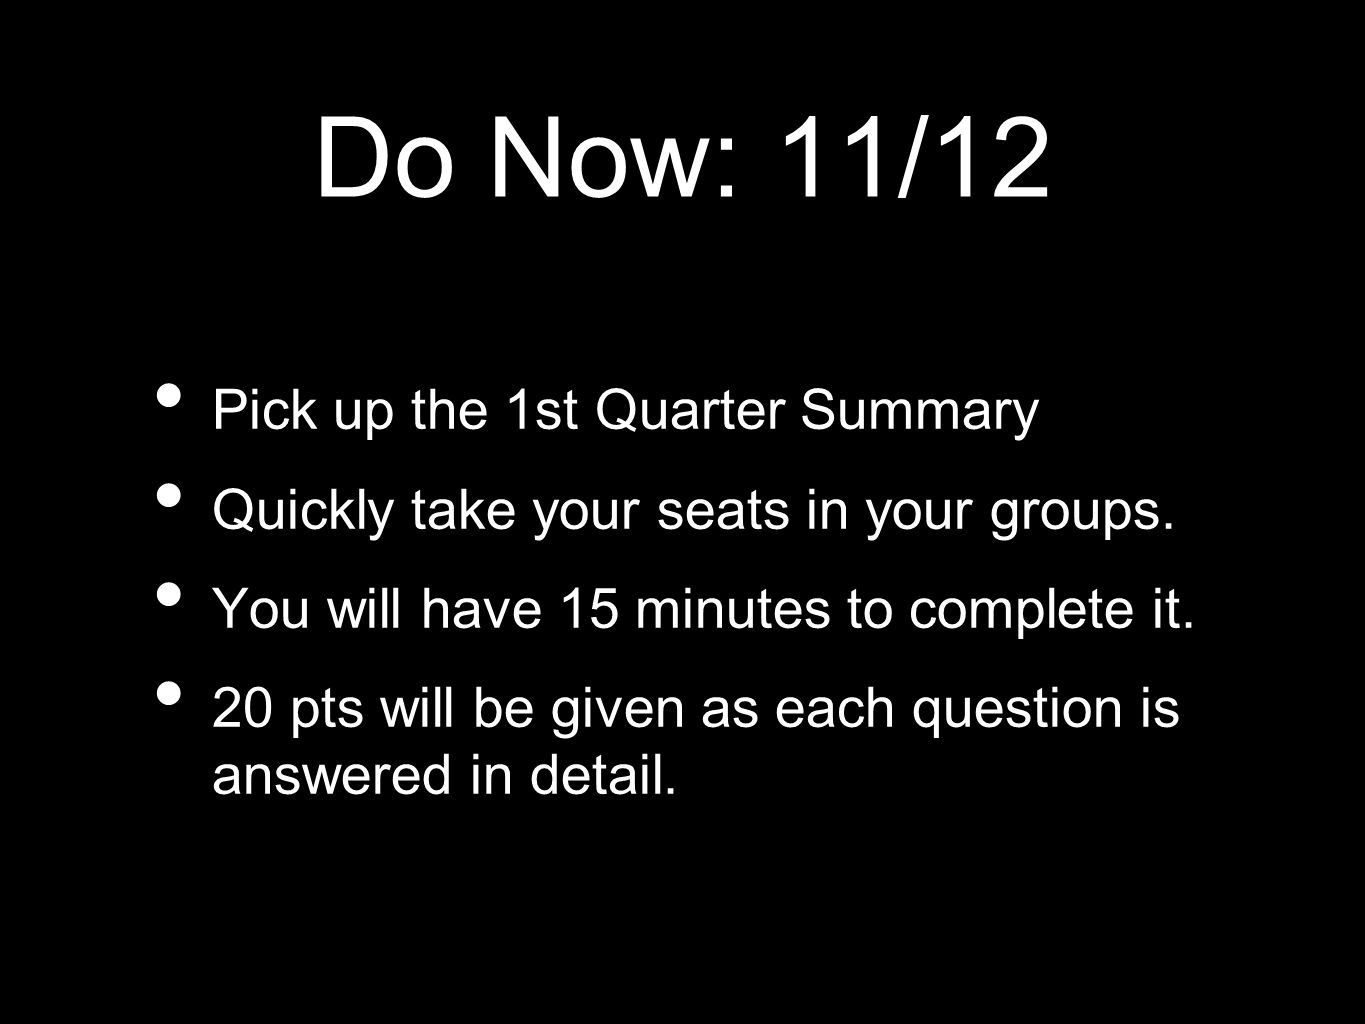 Do Now: 11/12 Pick up the 1st Quarter Summary Quickly take your seats in your groups. You will have 15 minutes to complete it. 20 pts will be given as